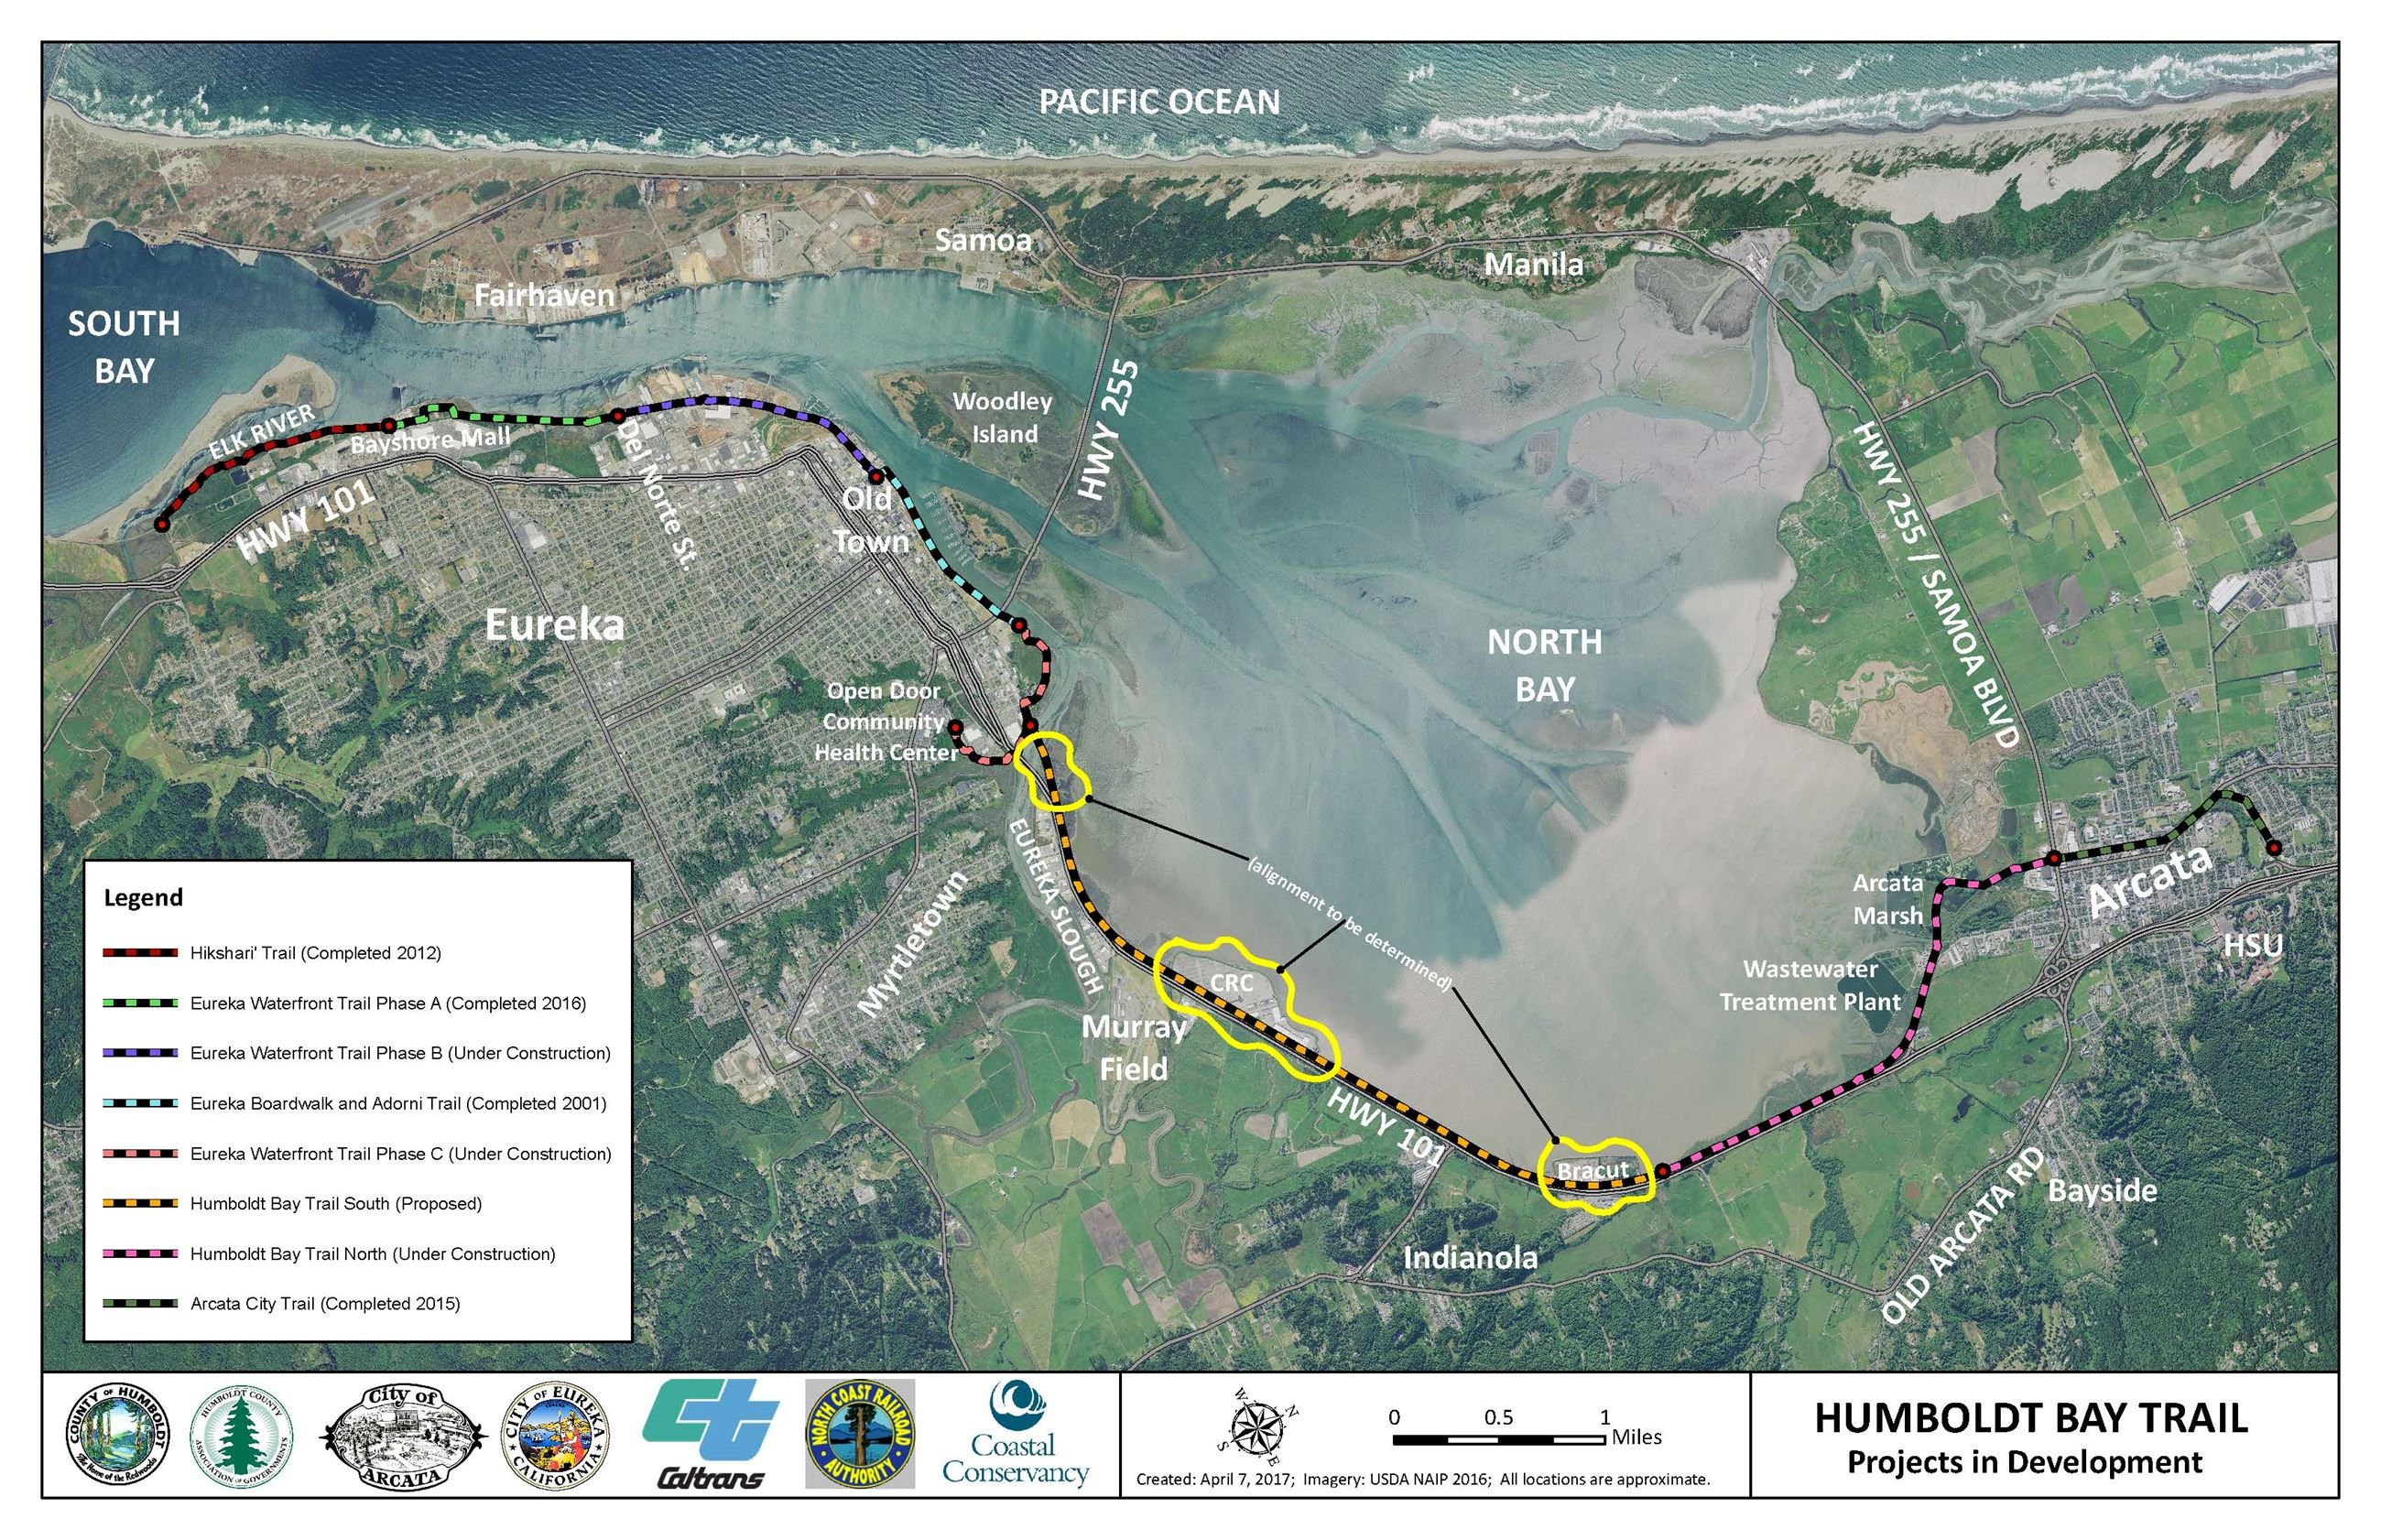 Humboldt Bay Trail Aerial Map